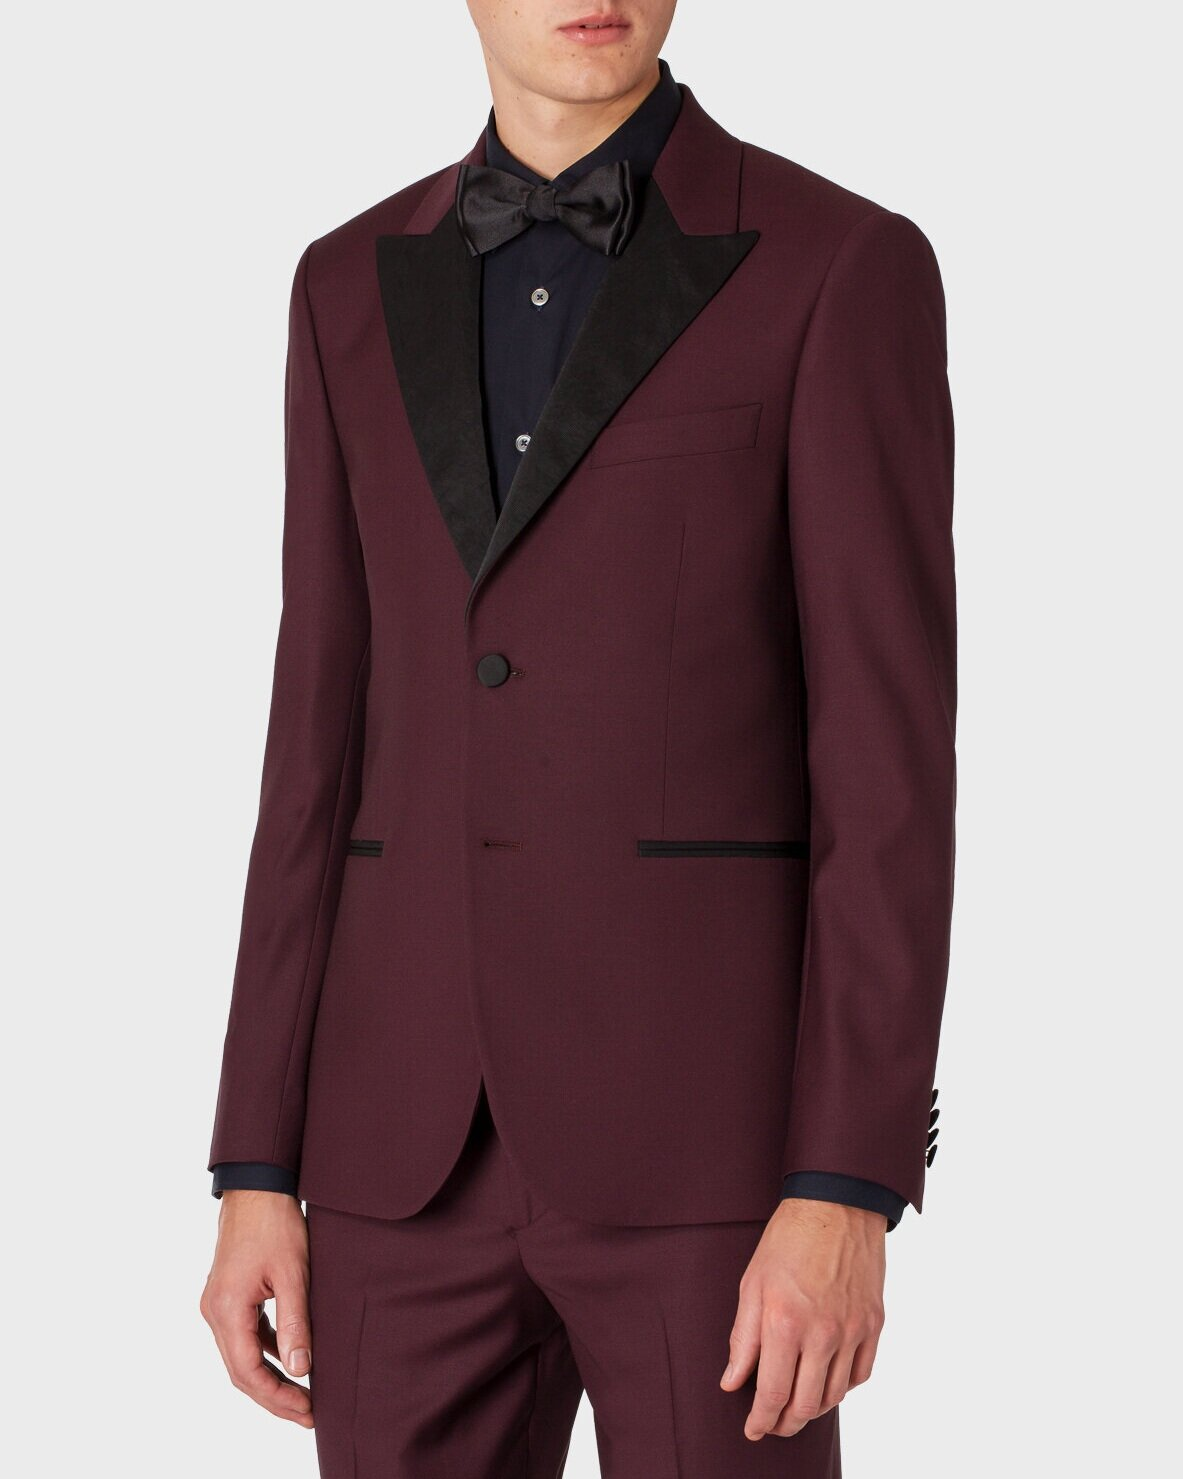 △ Paul Smith The Soho - Men's Tailored-Fit Damson Wool Evening Suit  £1,210.00 (~HK$11,766)